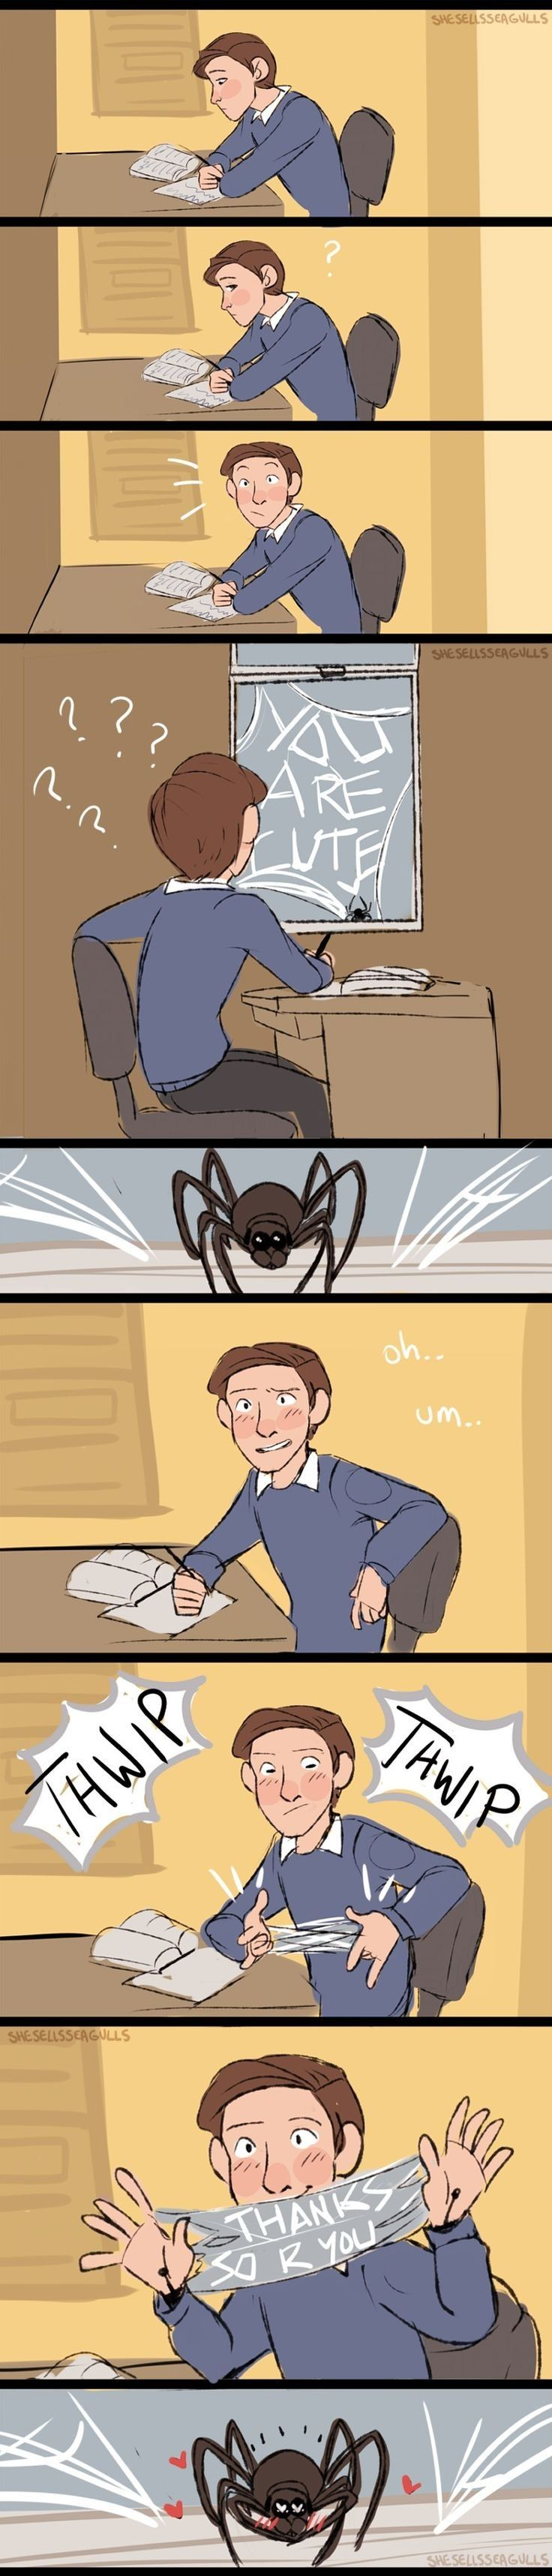 I don't what's weirder, a spider flirting with Peter and him returning it, or the Spider somehow knowing English.